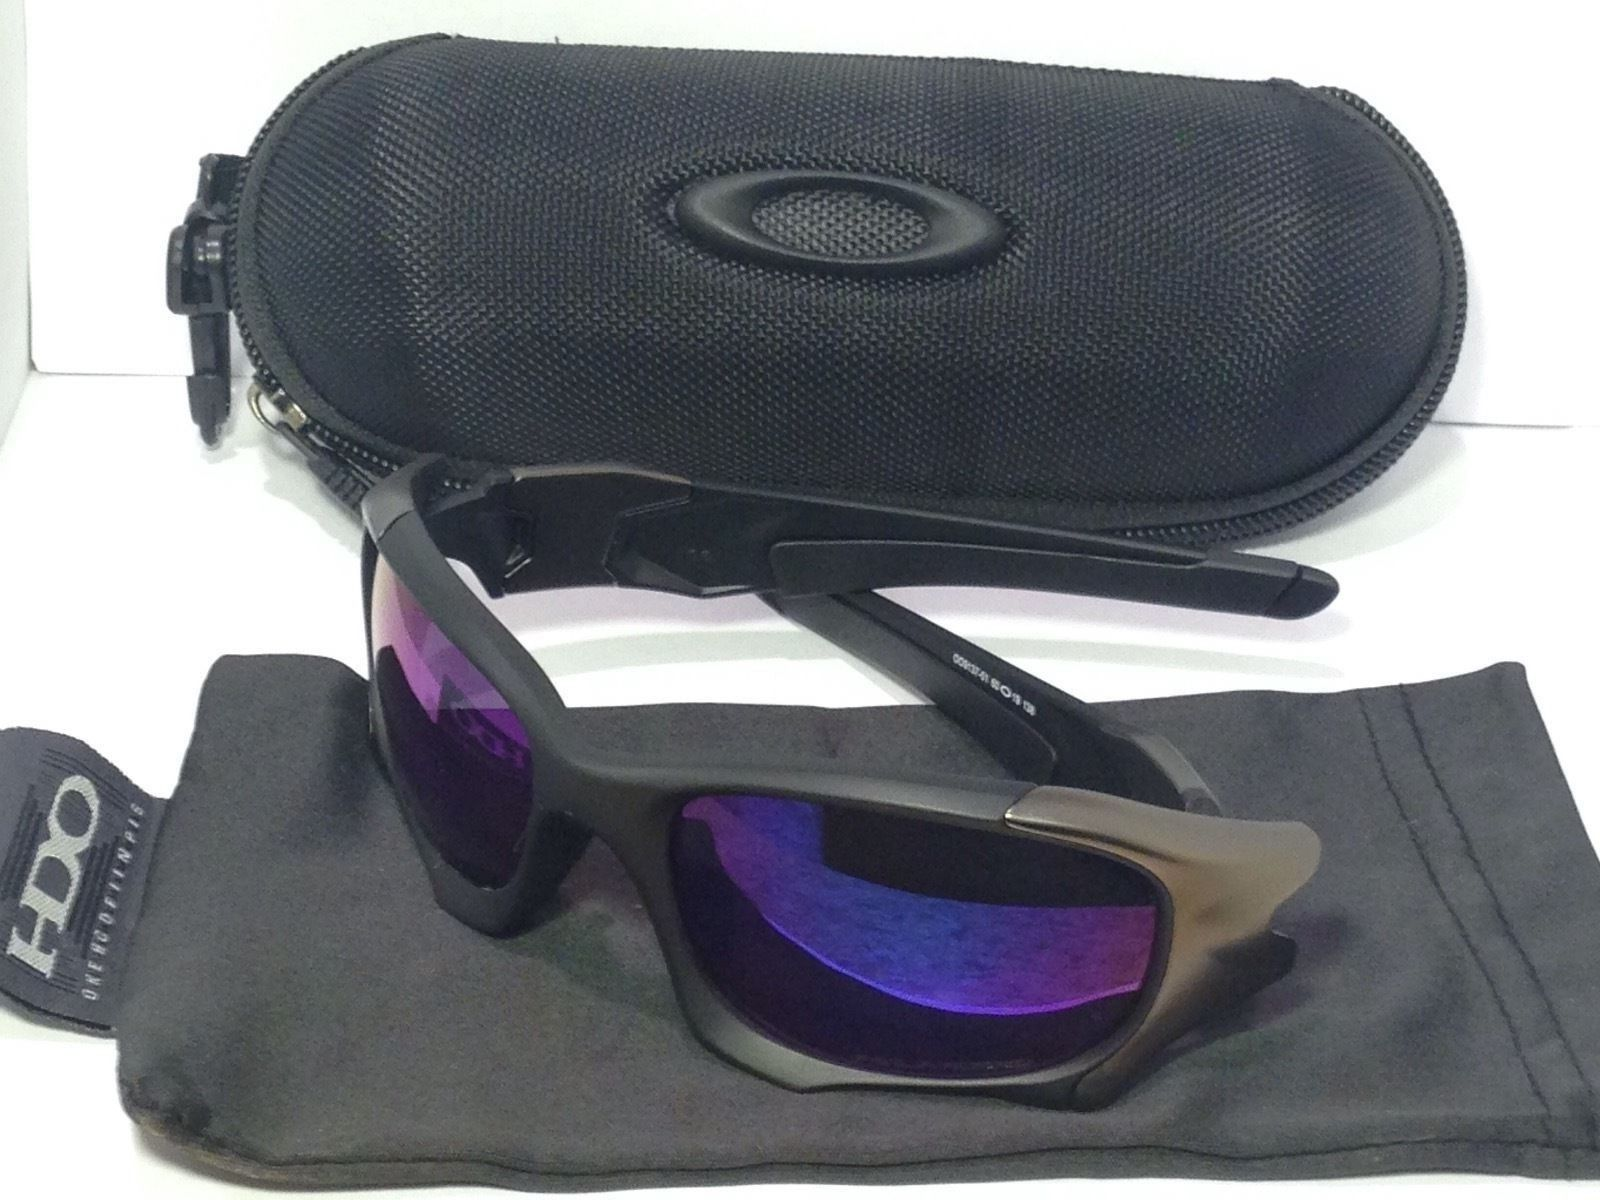 I was told these are Oakley PB2 lens - PB2.JPG